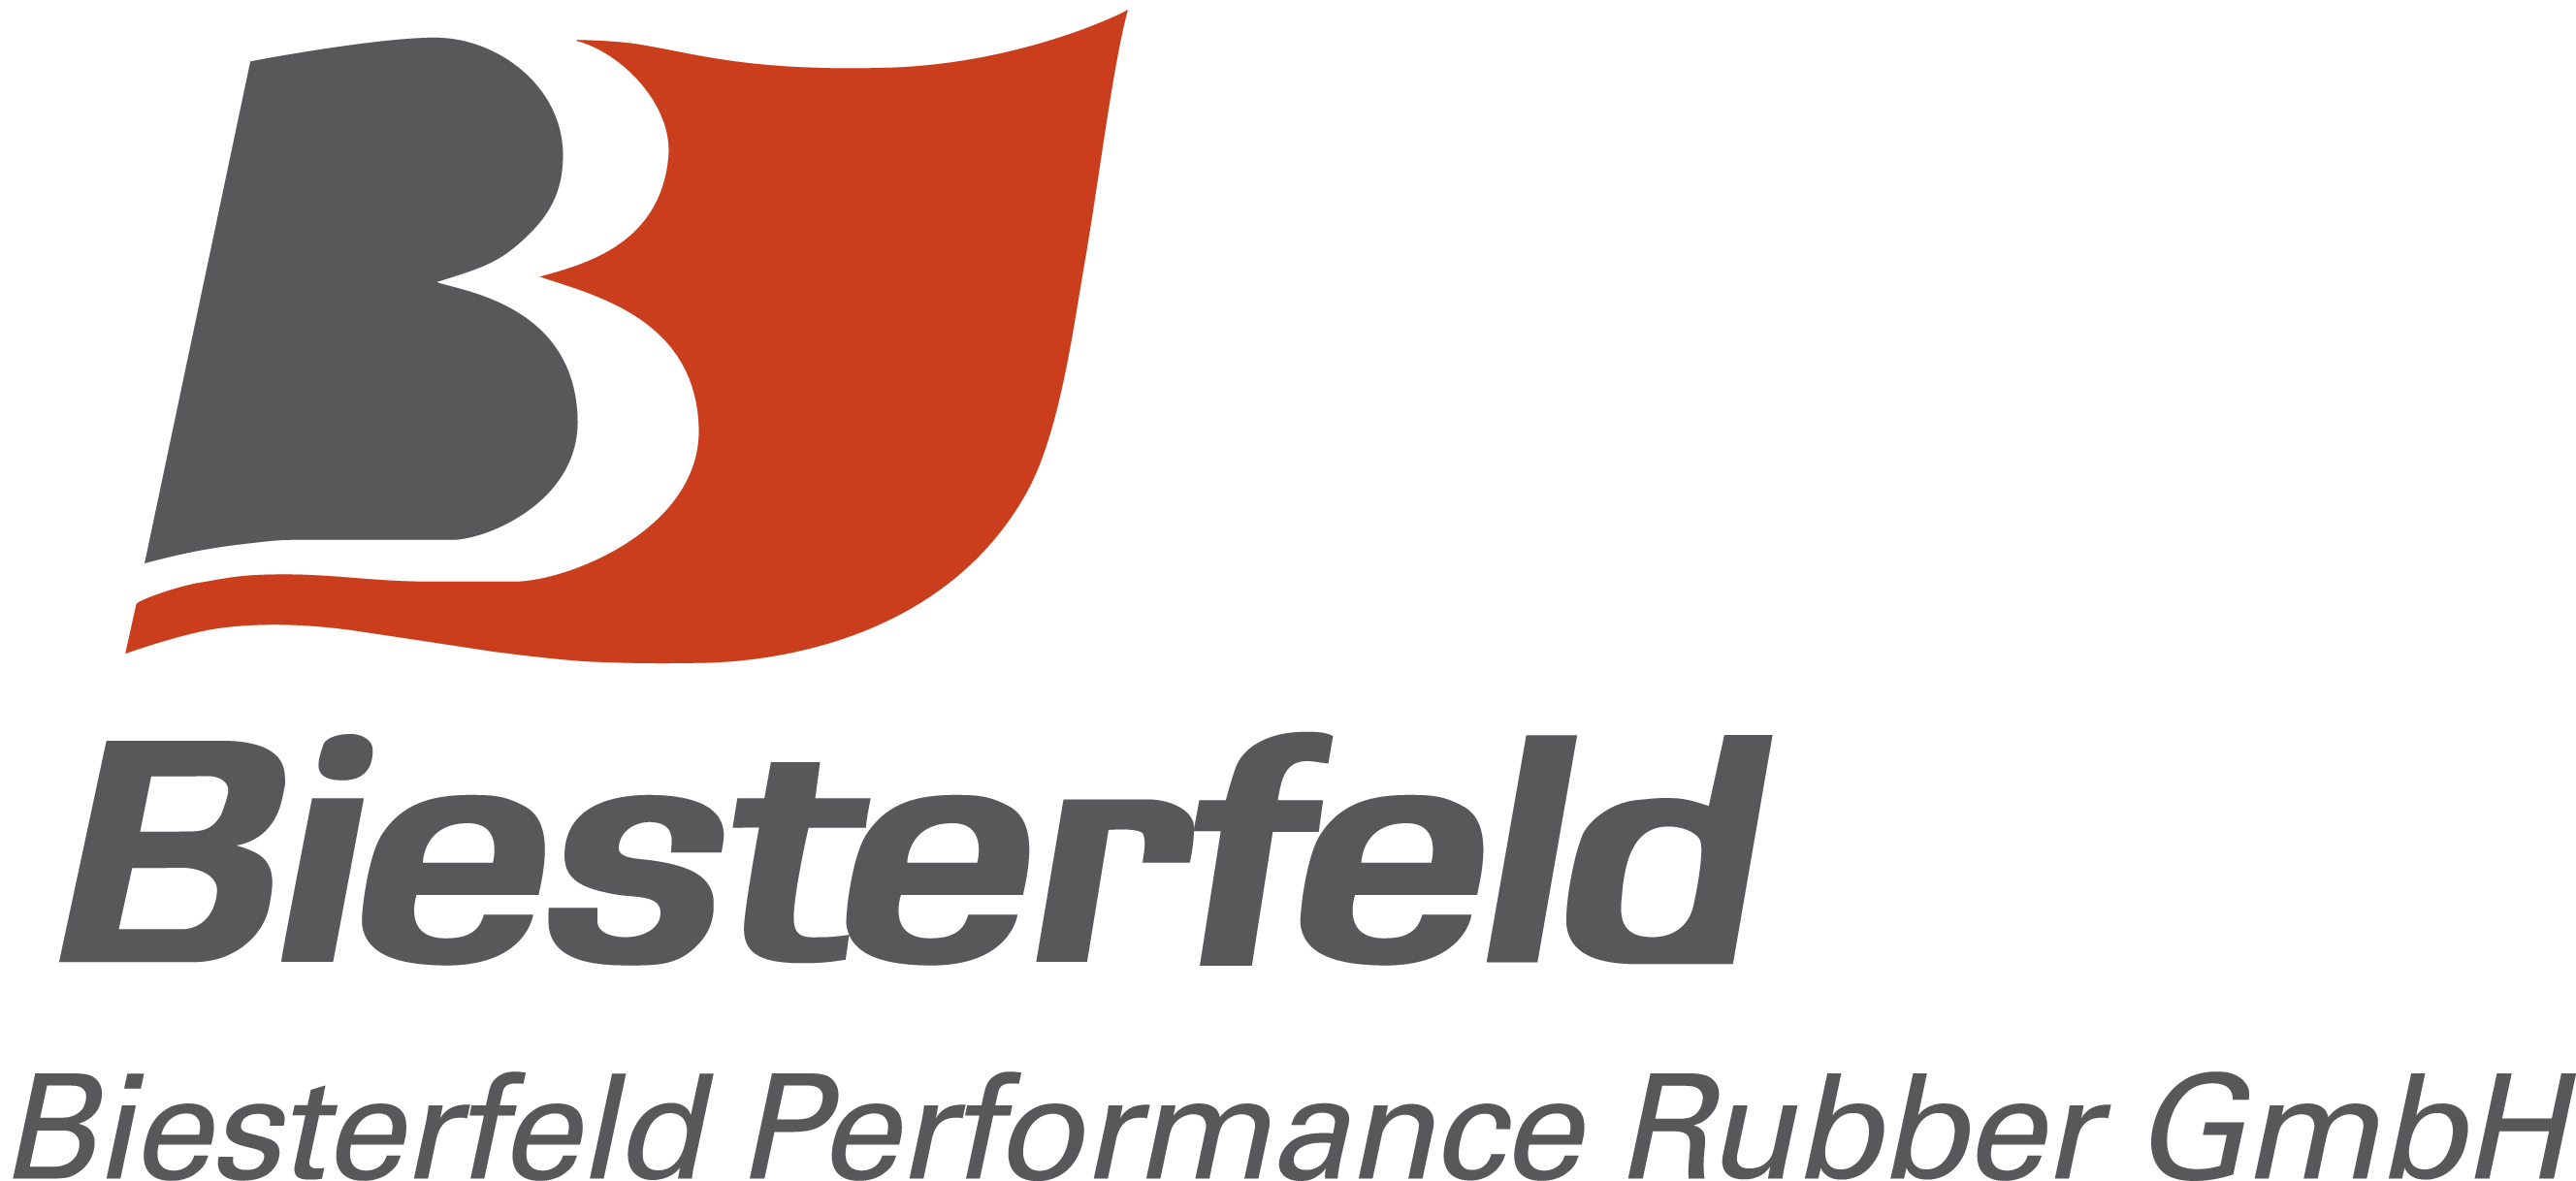 Biesterfeld Performance Rubber GmbH 002